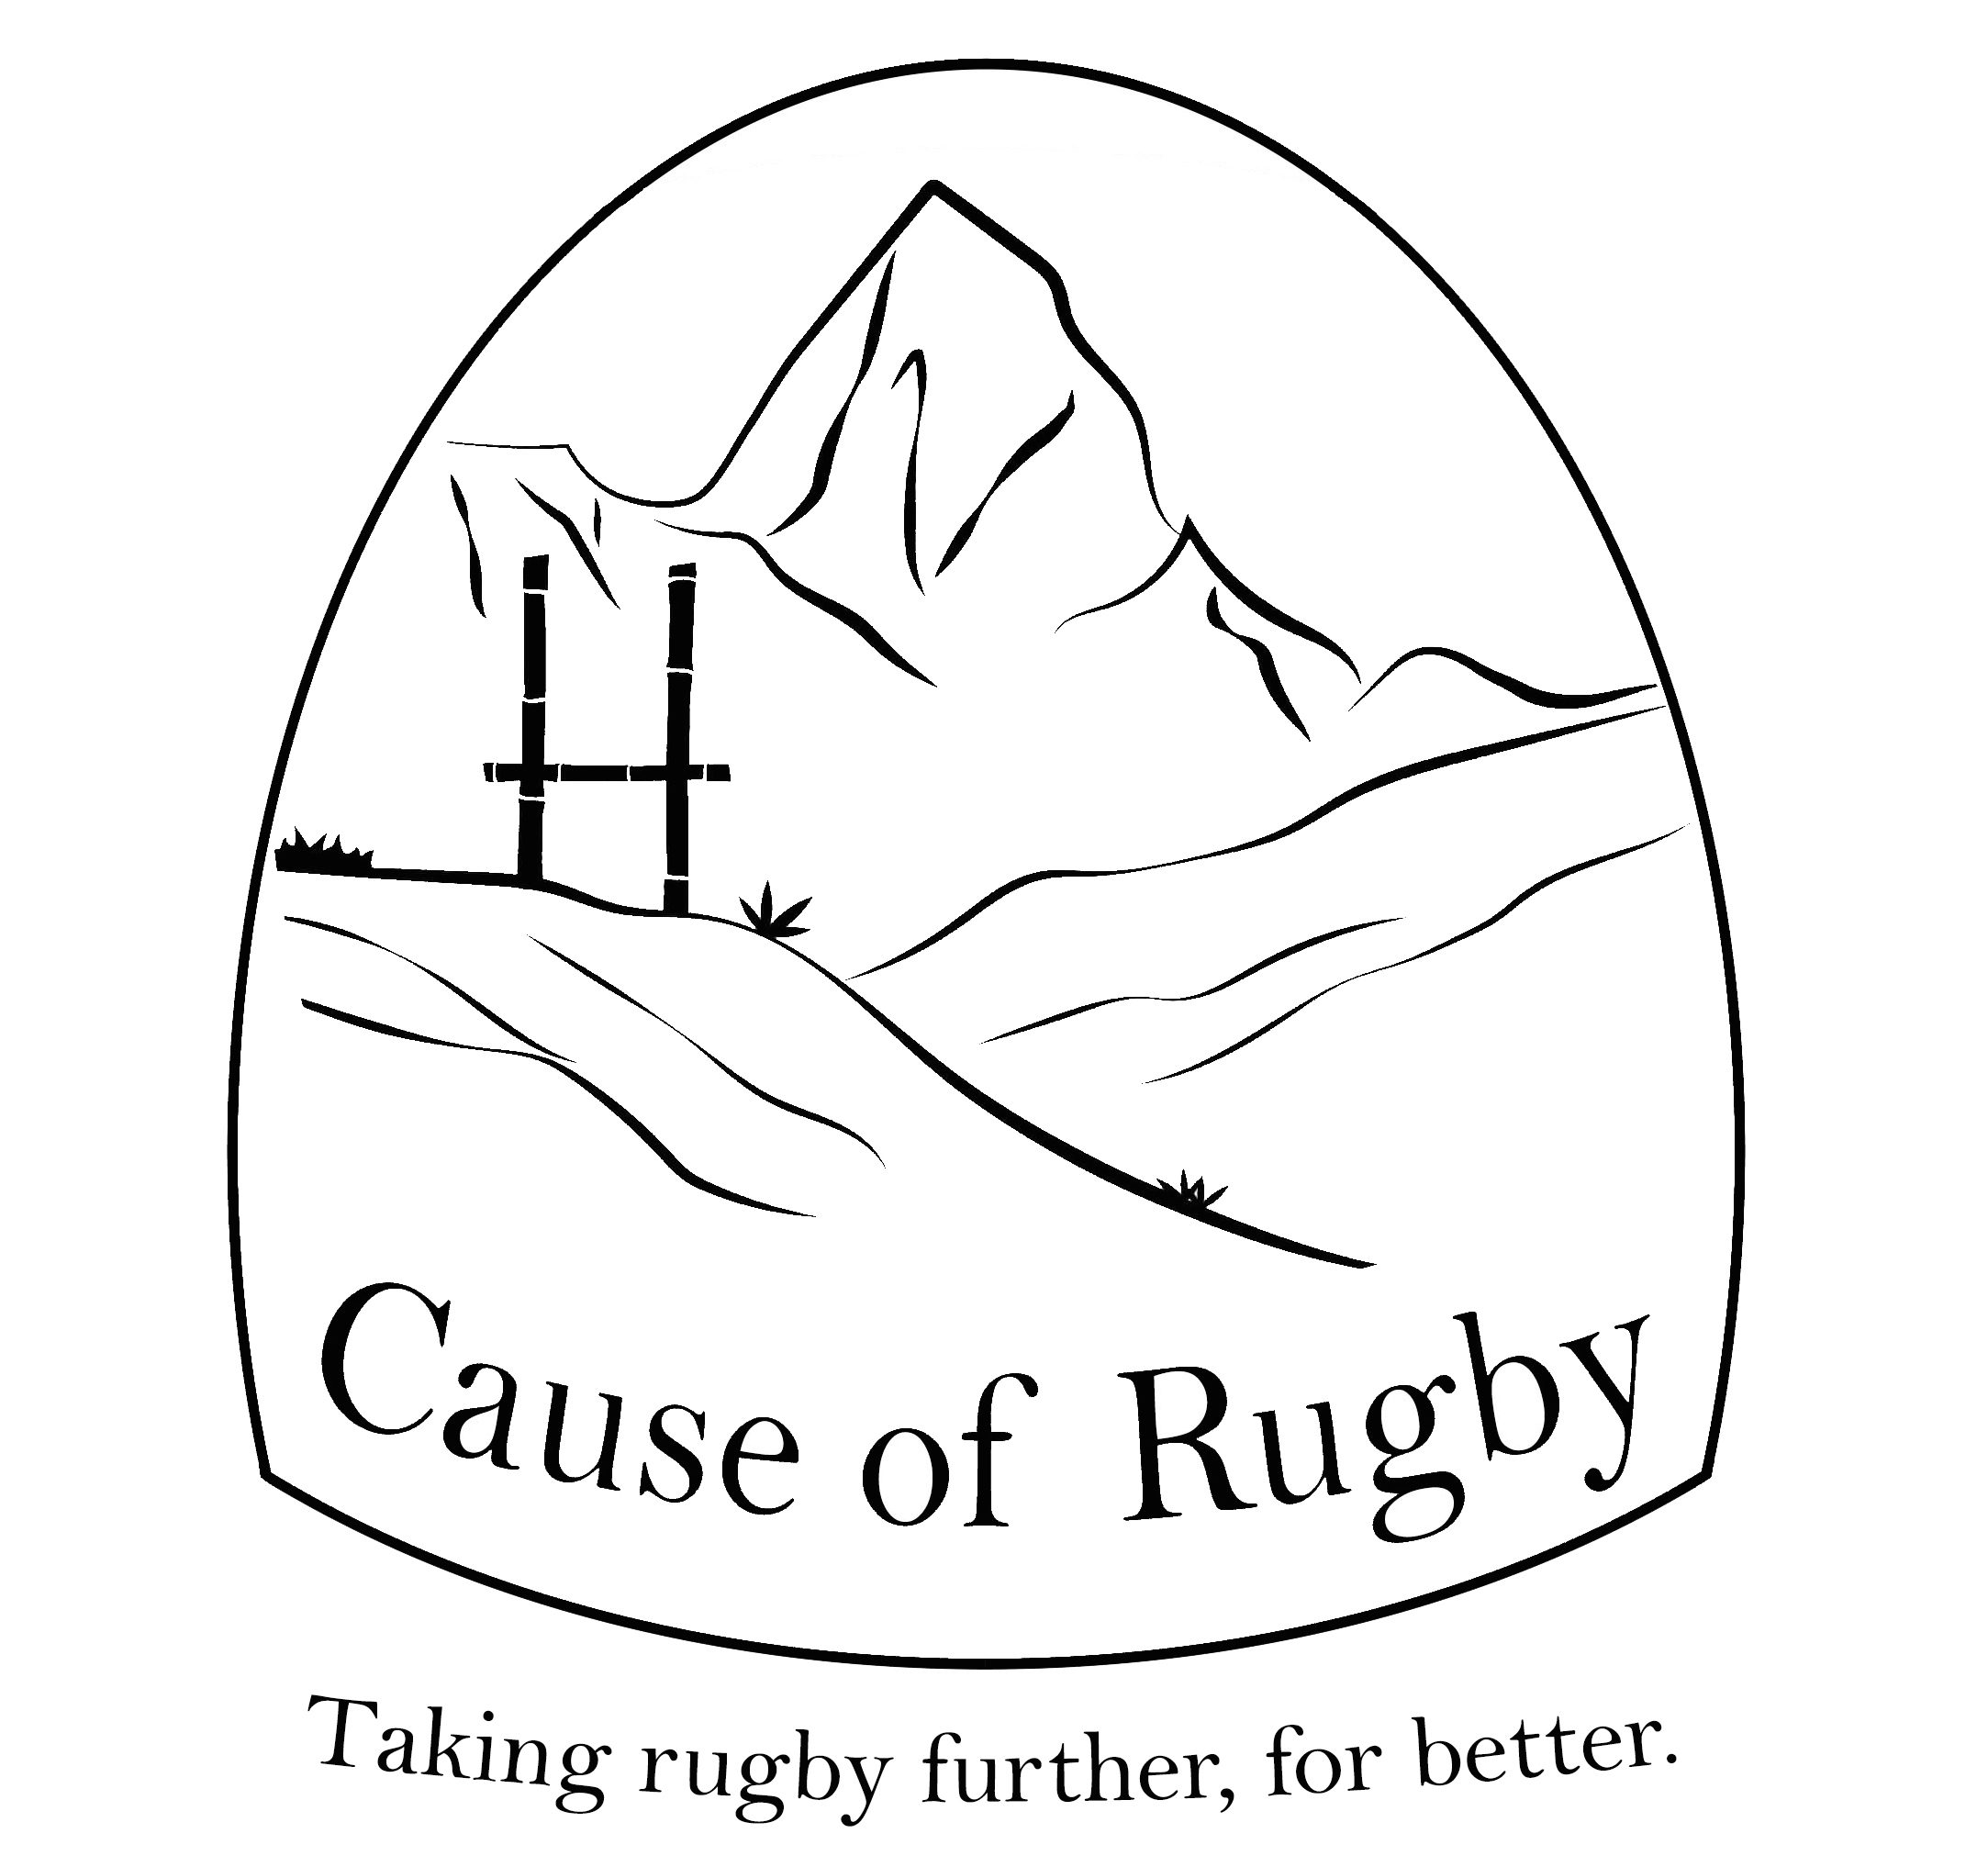 Cause of Rugby